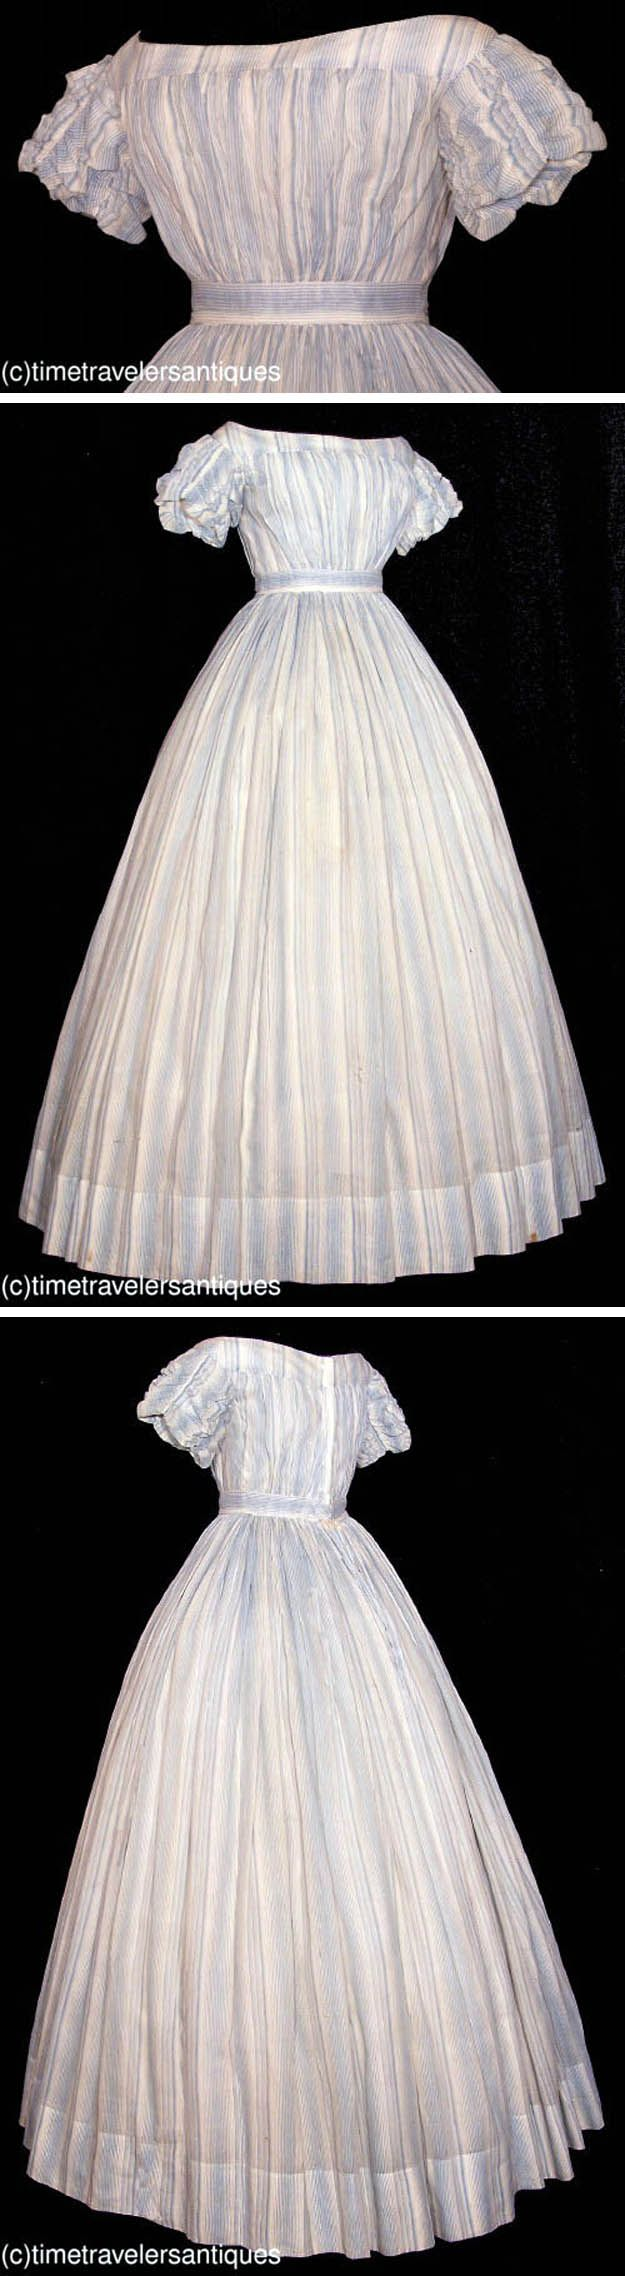 Civil War: Summer dress ca. 1860s. One piece; powder blue striped muslin with pleated bodice & ruched sleeves. Piped at the neckline, armscyes, and waistband. Blind back hook & eye closure. Bodice lined in muslin. Unlined skirt is finely cartridge-pleated, with single slit pocket and deep faced hem. Time Travelers Antiques via Extant Gowns